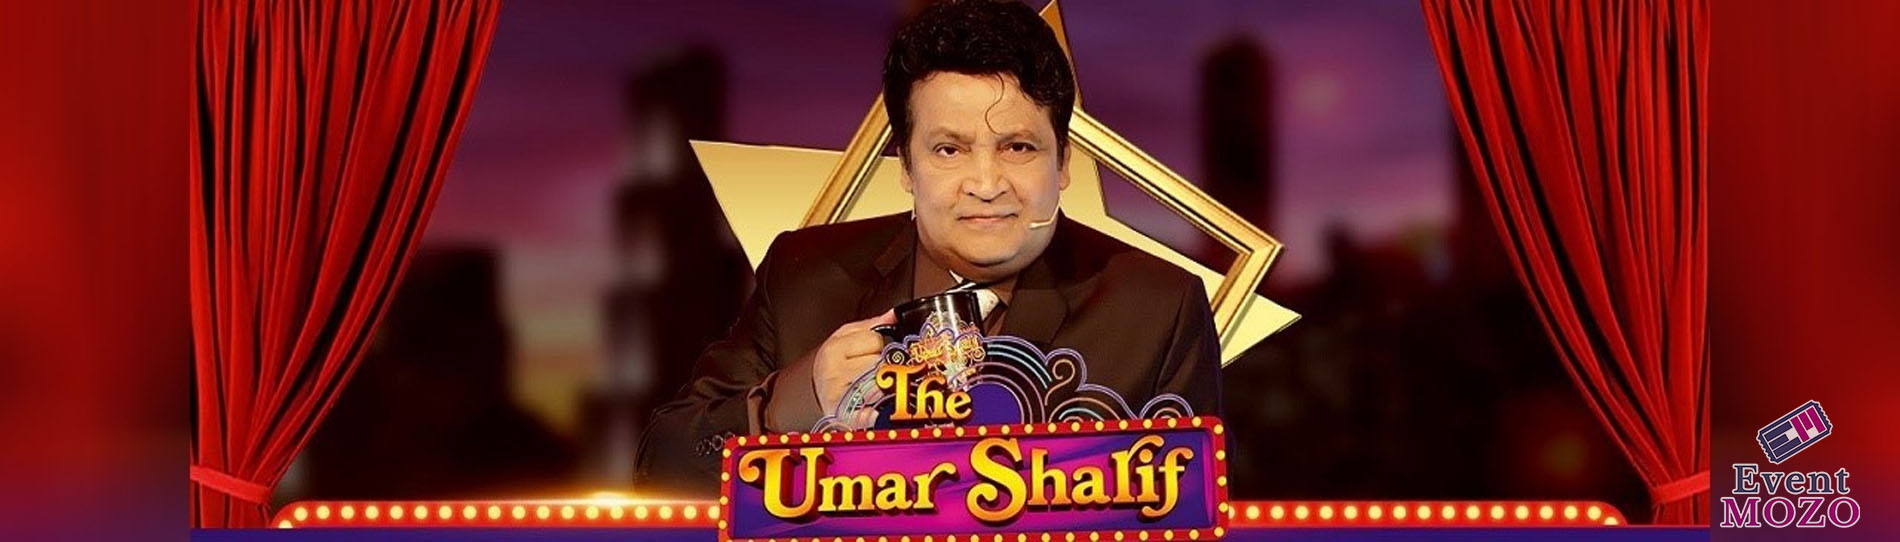 EventMozo Umer Sharif - King of Comedy Live In Houston 2018